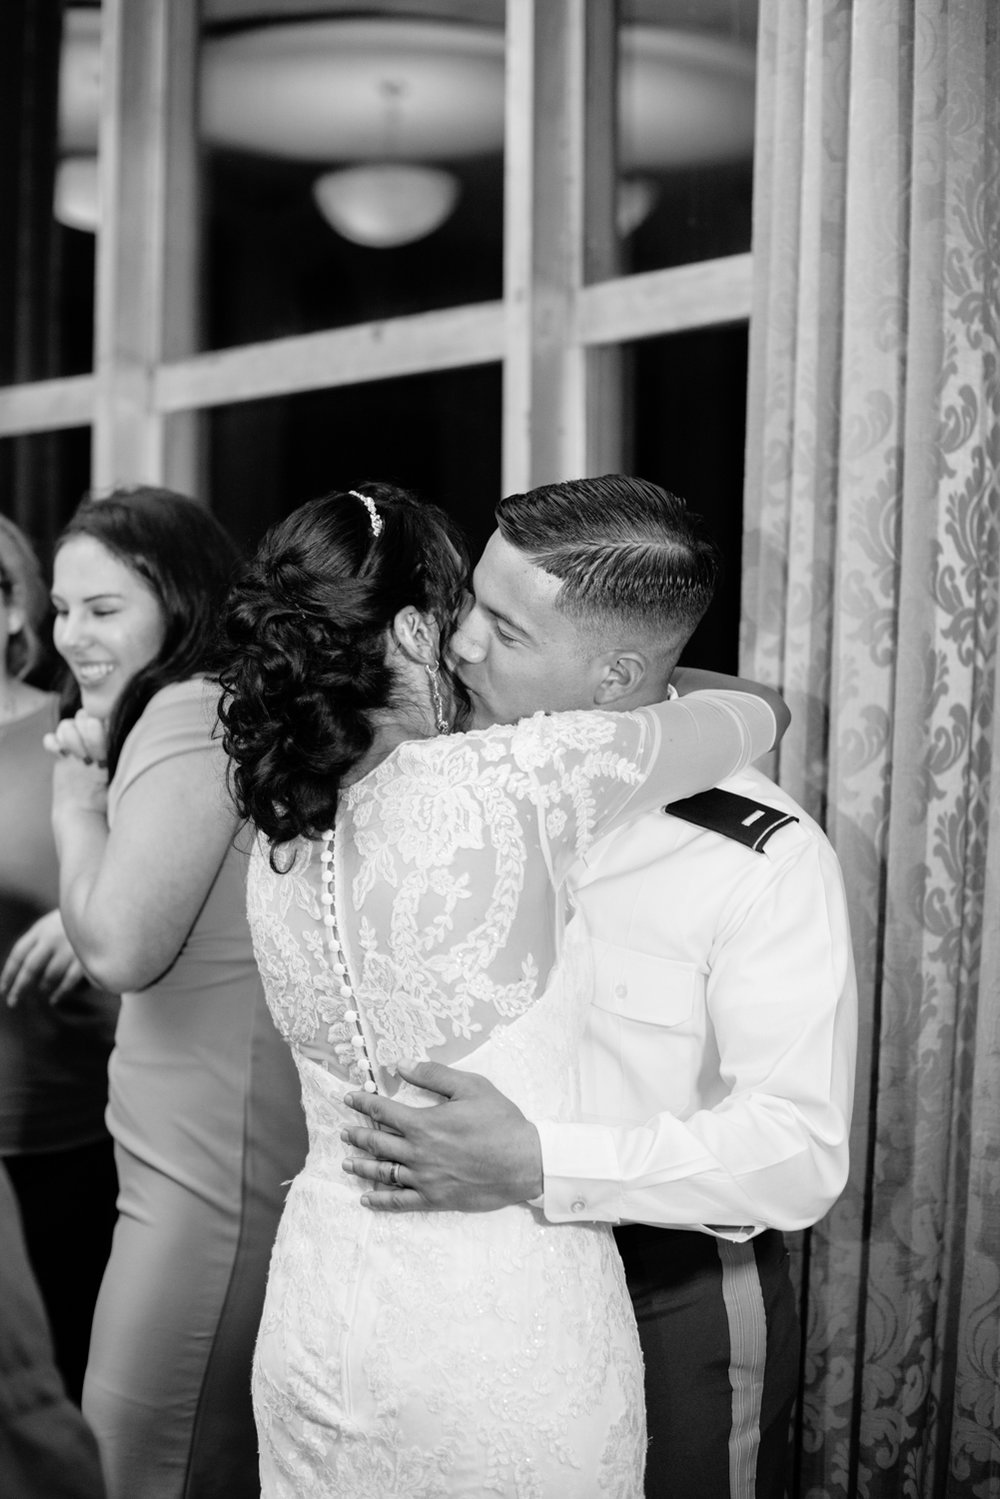 West Point Wedding- Mari + Dalton- New Jersey New York Wedding Photographer Olivia Christina Photo-246.jpg